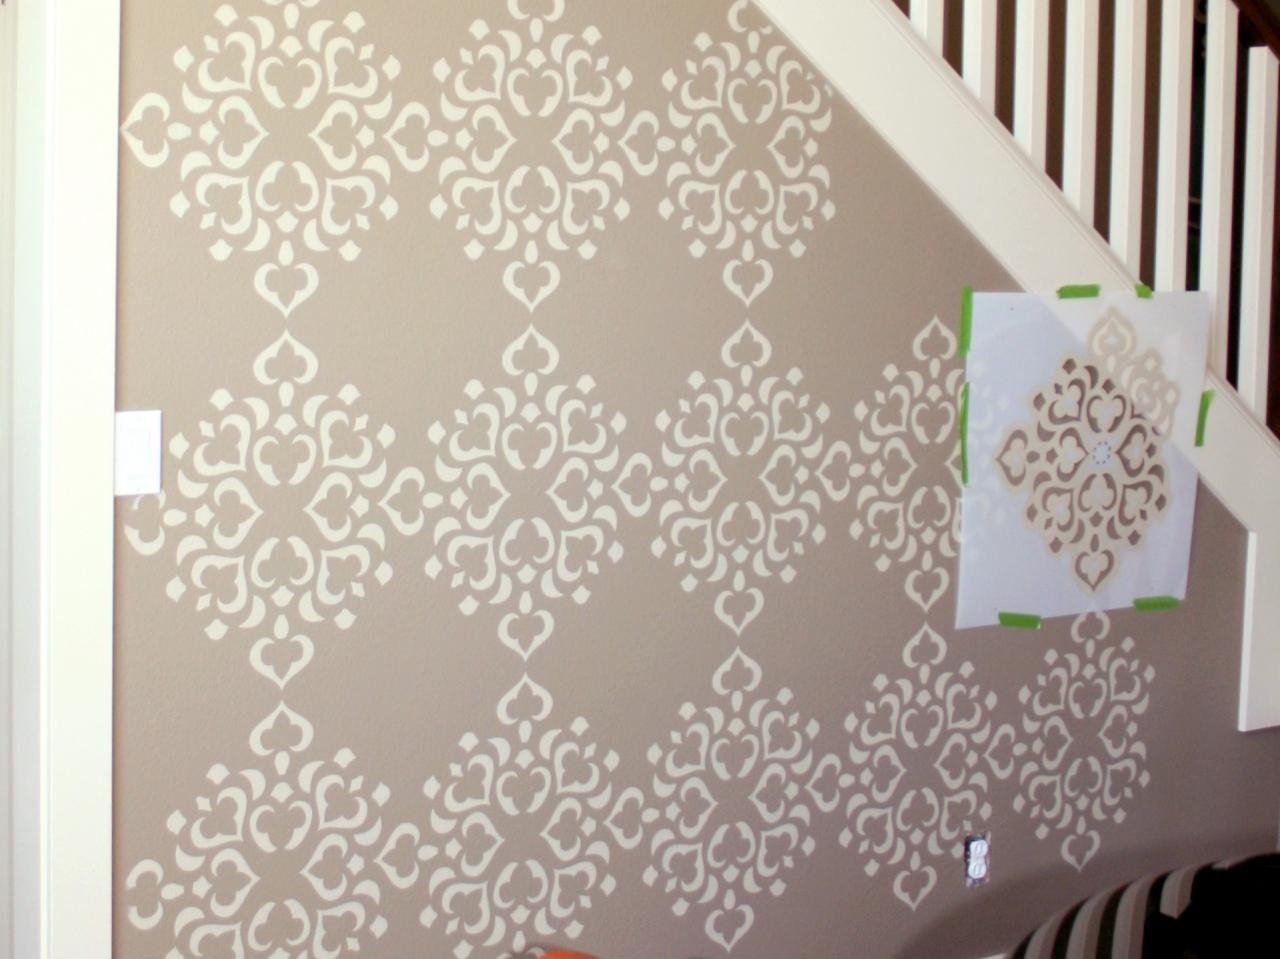 Give Your Home A Dramatic Look With The Help Of Wall Stencils pertaining to Stencil Wall Art (Image 11 of 20)